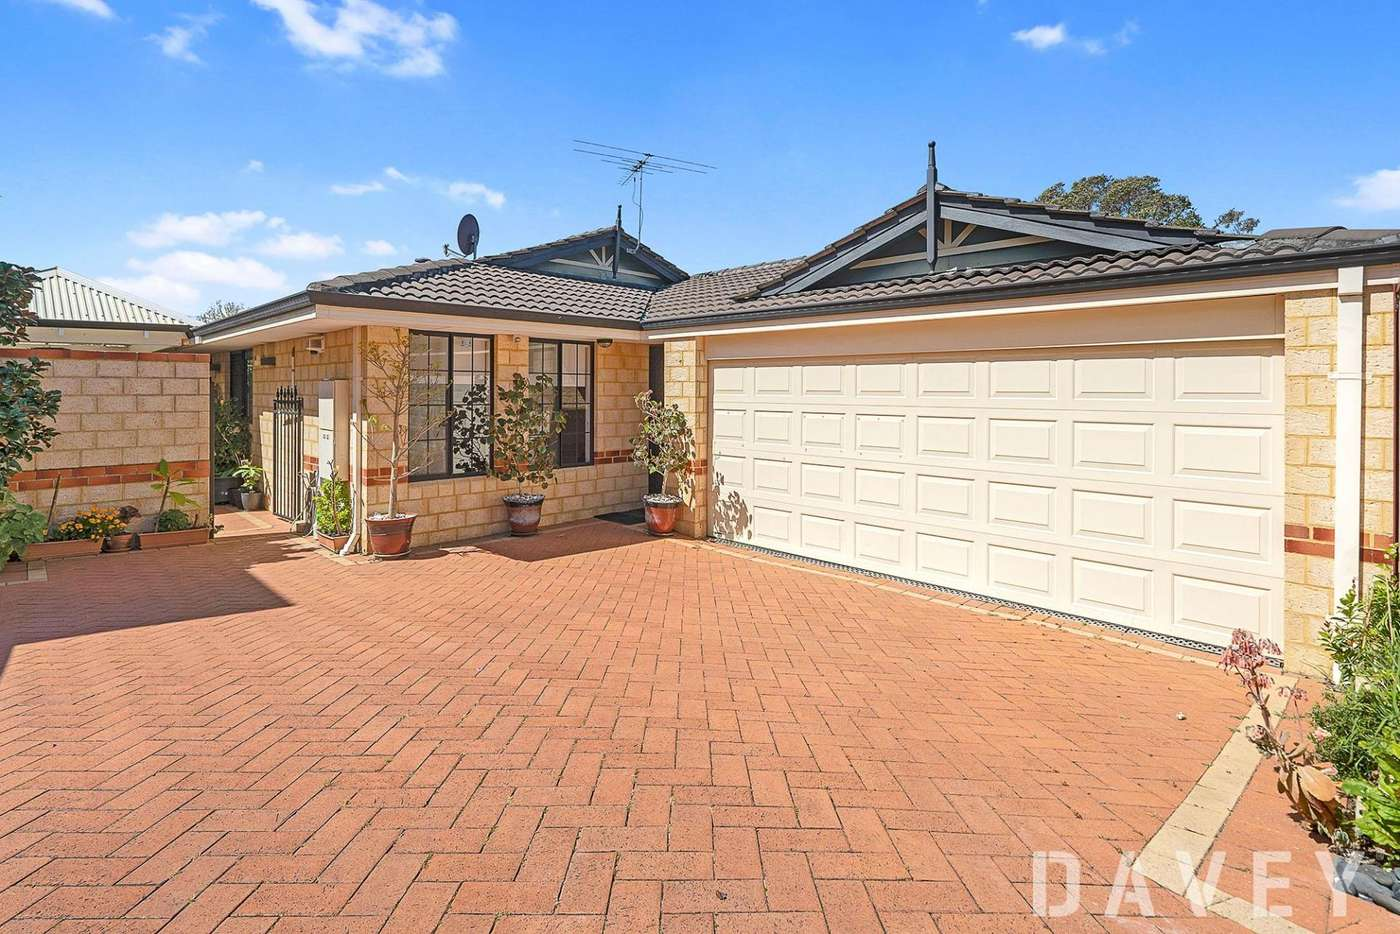 Main view of Homely house listing, 246A Ravenscar Street, Doubleview WA 6018